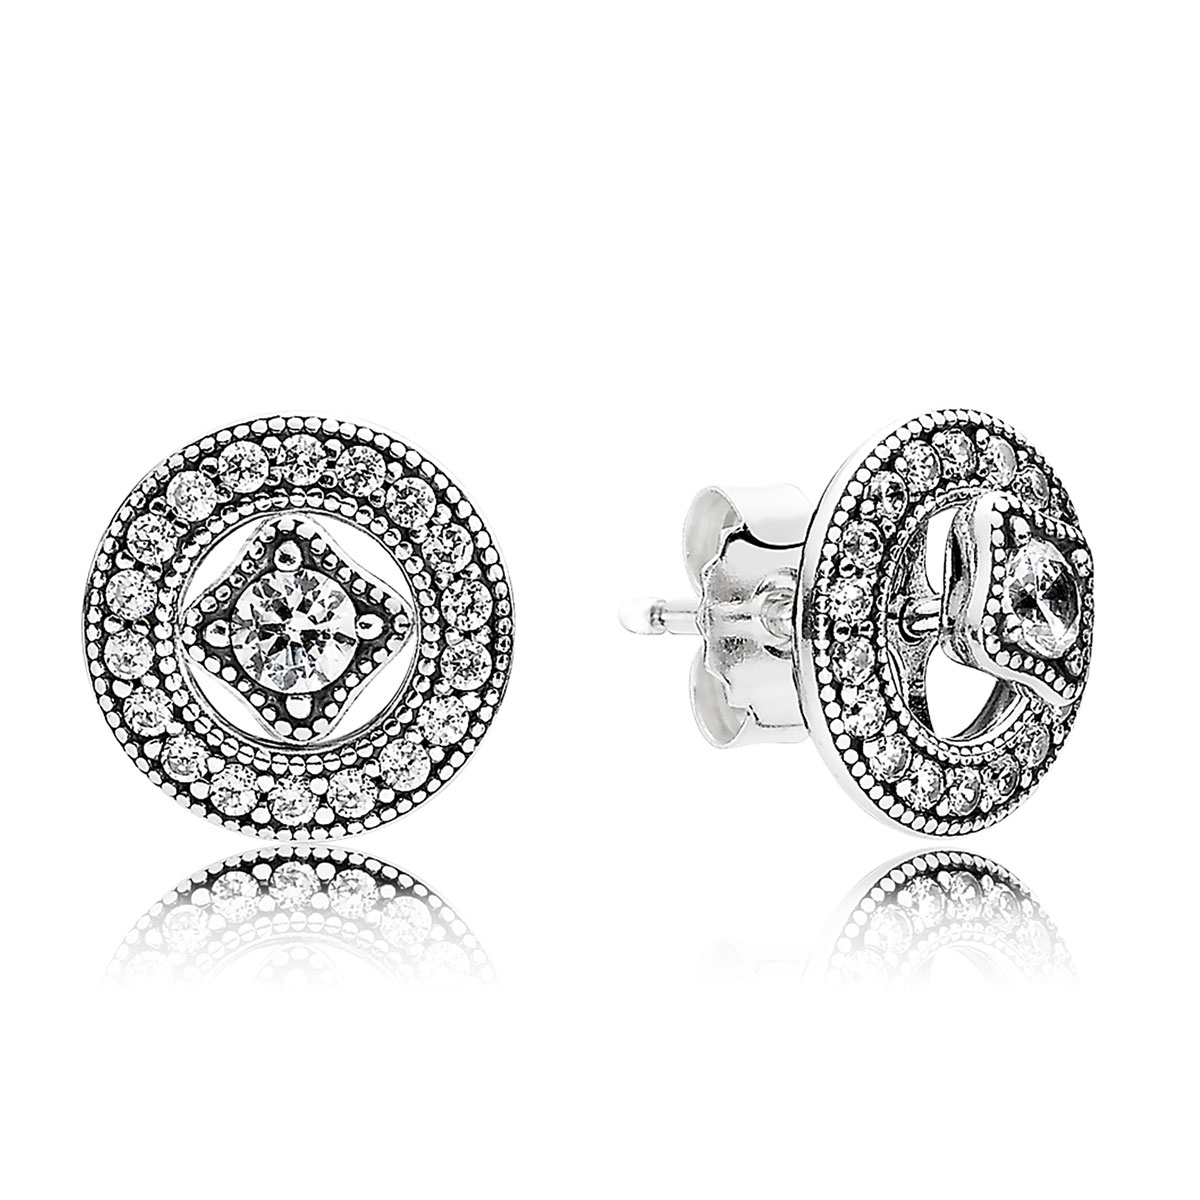 d1ded5b6c ... Pandora Jewelry - Authentic Pandora Sparkling Lace Drop Earrings PANDORA  Vintage Allure with Clear CZ Earrings .